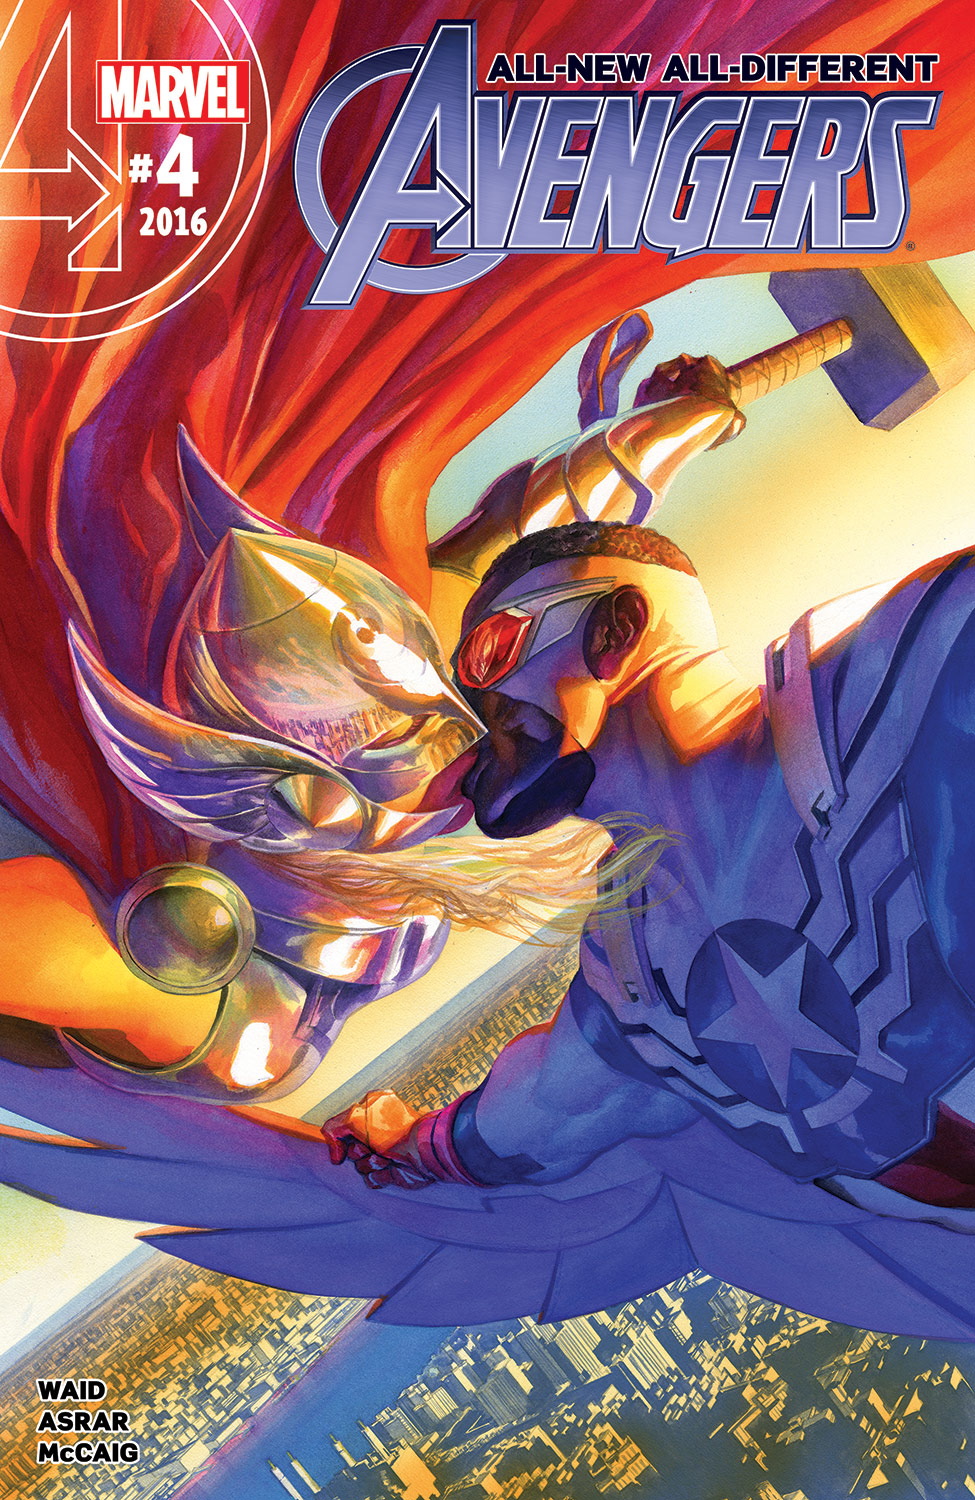 All-New, All-Different Avengers (2015) #4